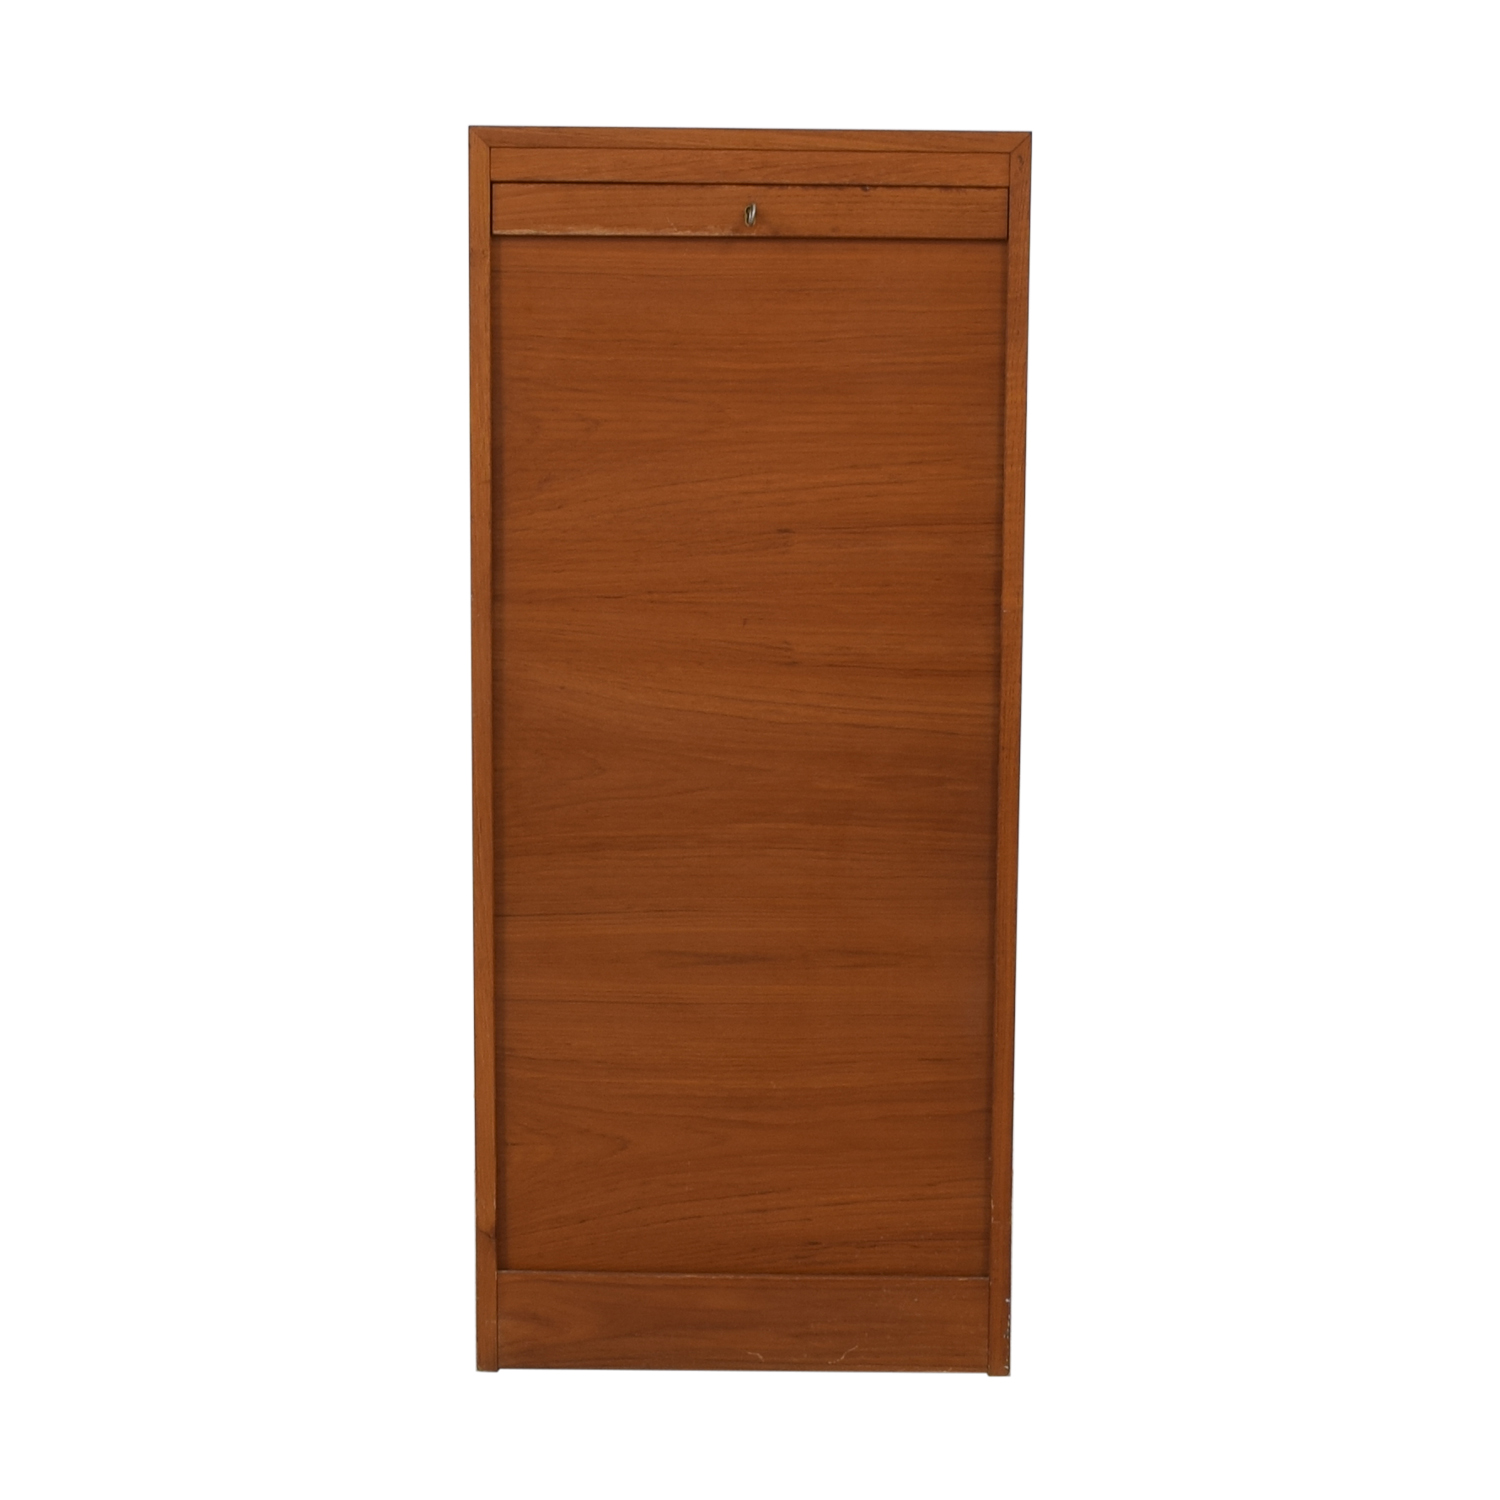 International Design Center Teak Danish Modern Filing Cabinet sale